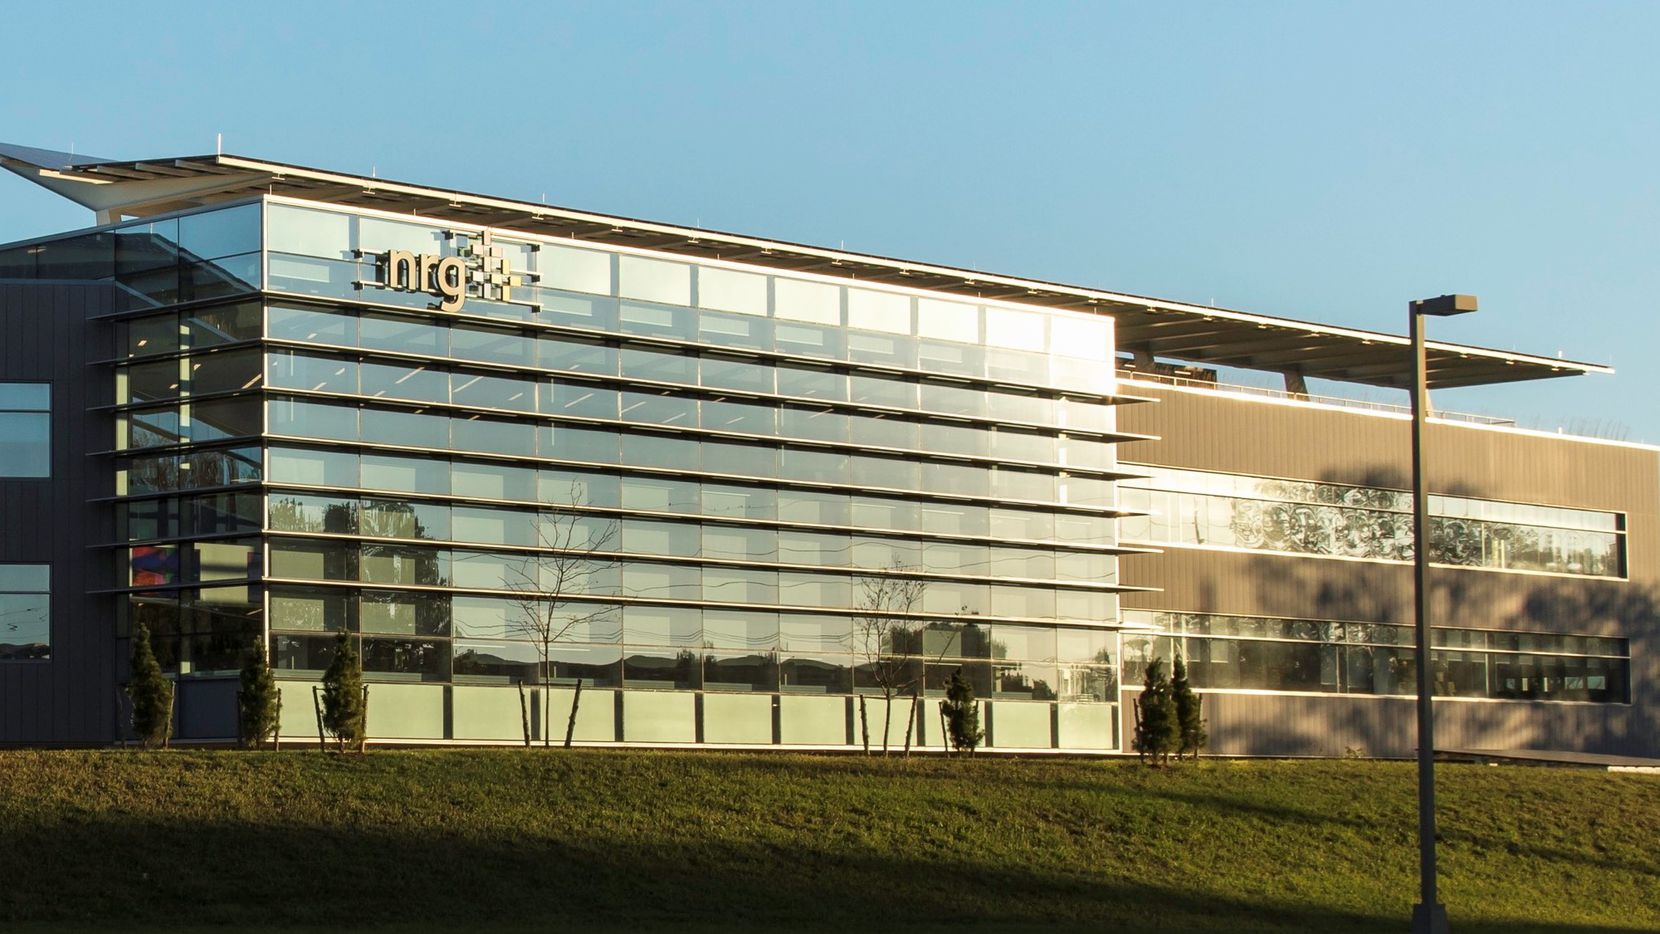 NRG Energy lists dual headquarters in Houston and this location in Princeton, N.J.